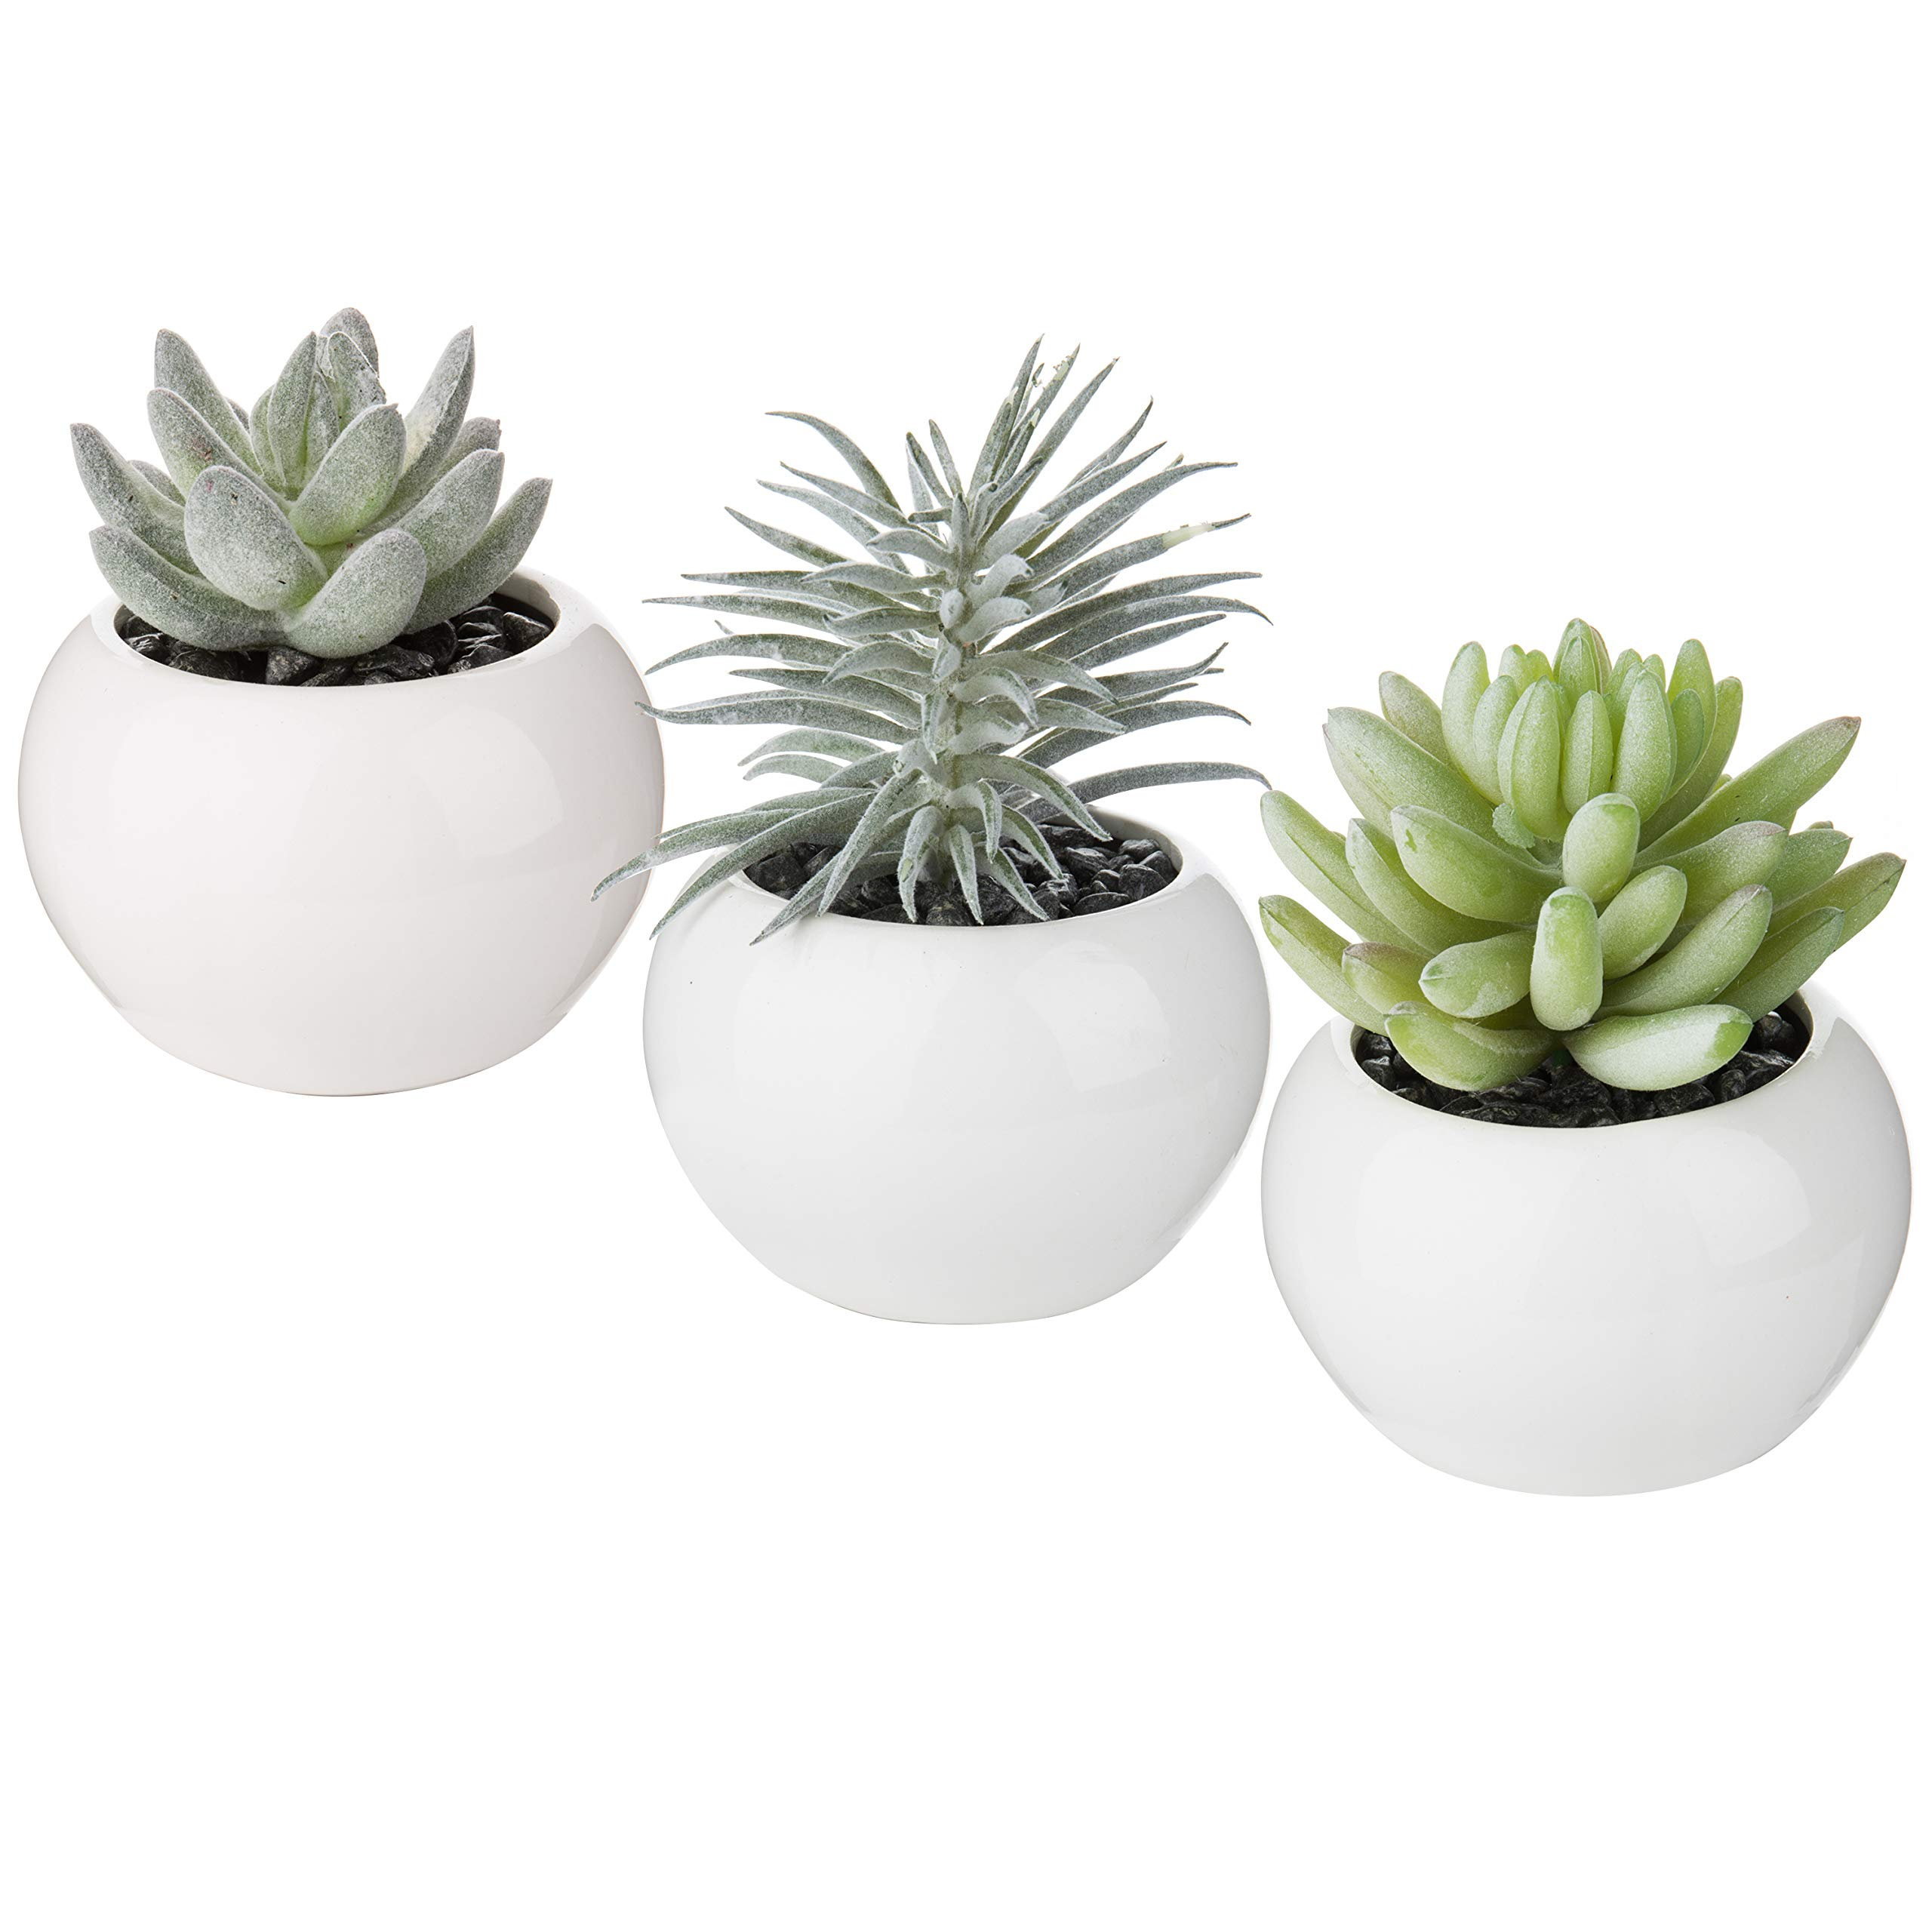 MyGift 4-Inch Artificial Succulent Plants in Mini White Ceramic Pots, Set of 3